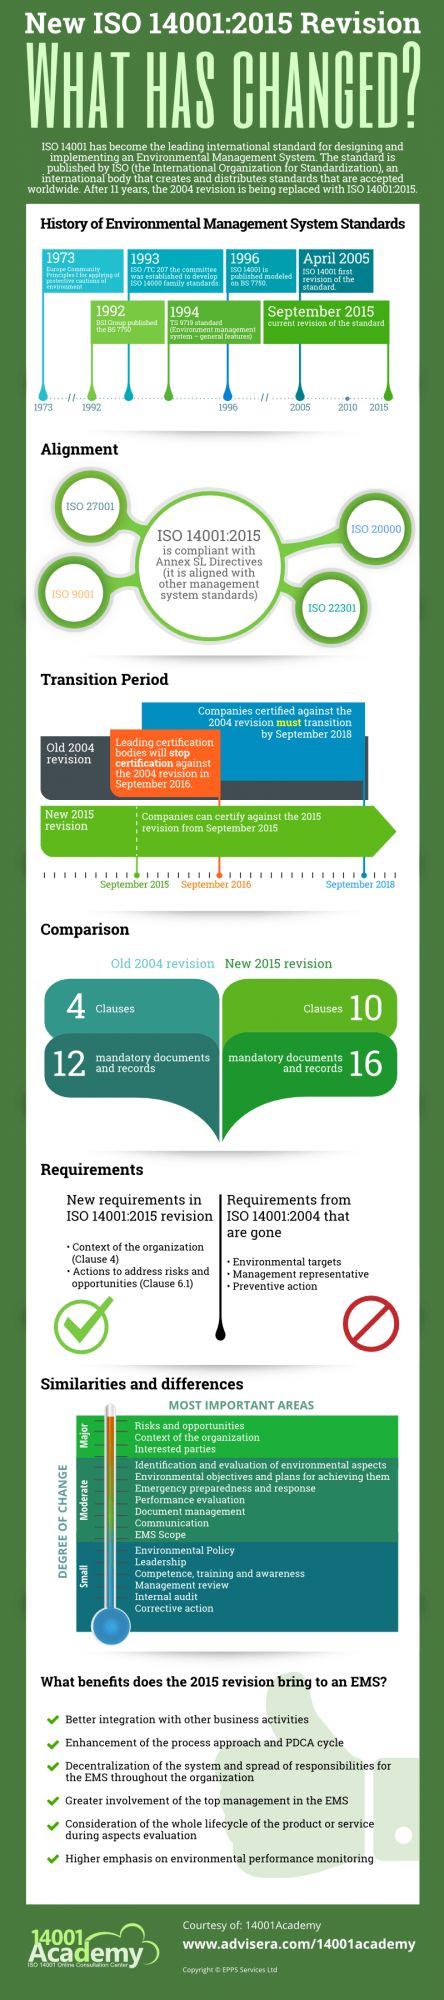 Infographic: ISO 14001:2015 vs. 2004 revision – What has changed?